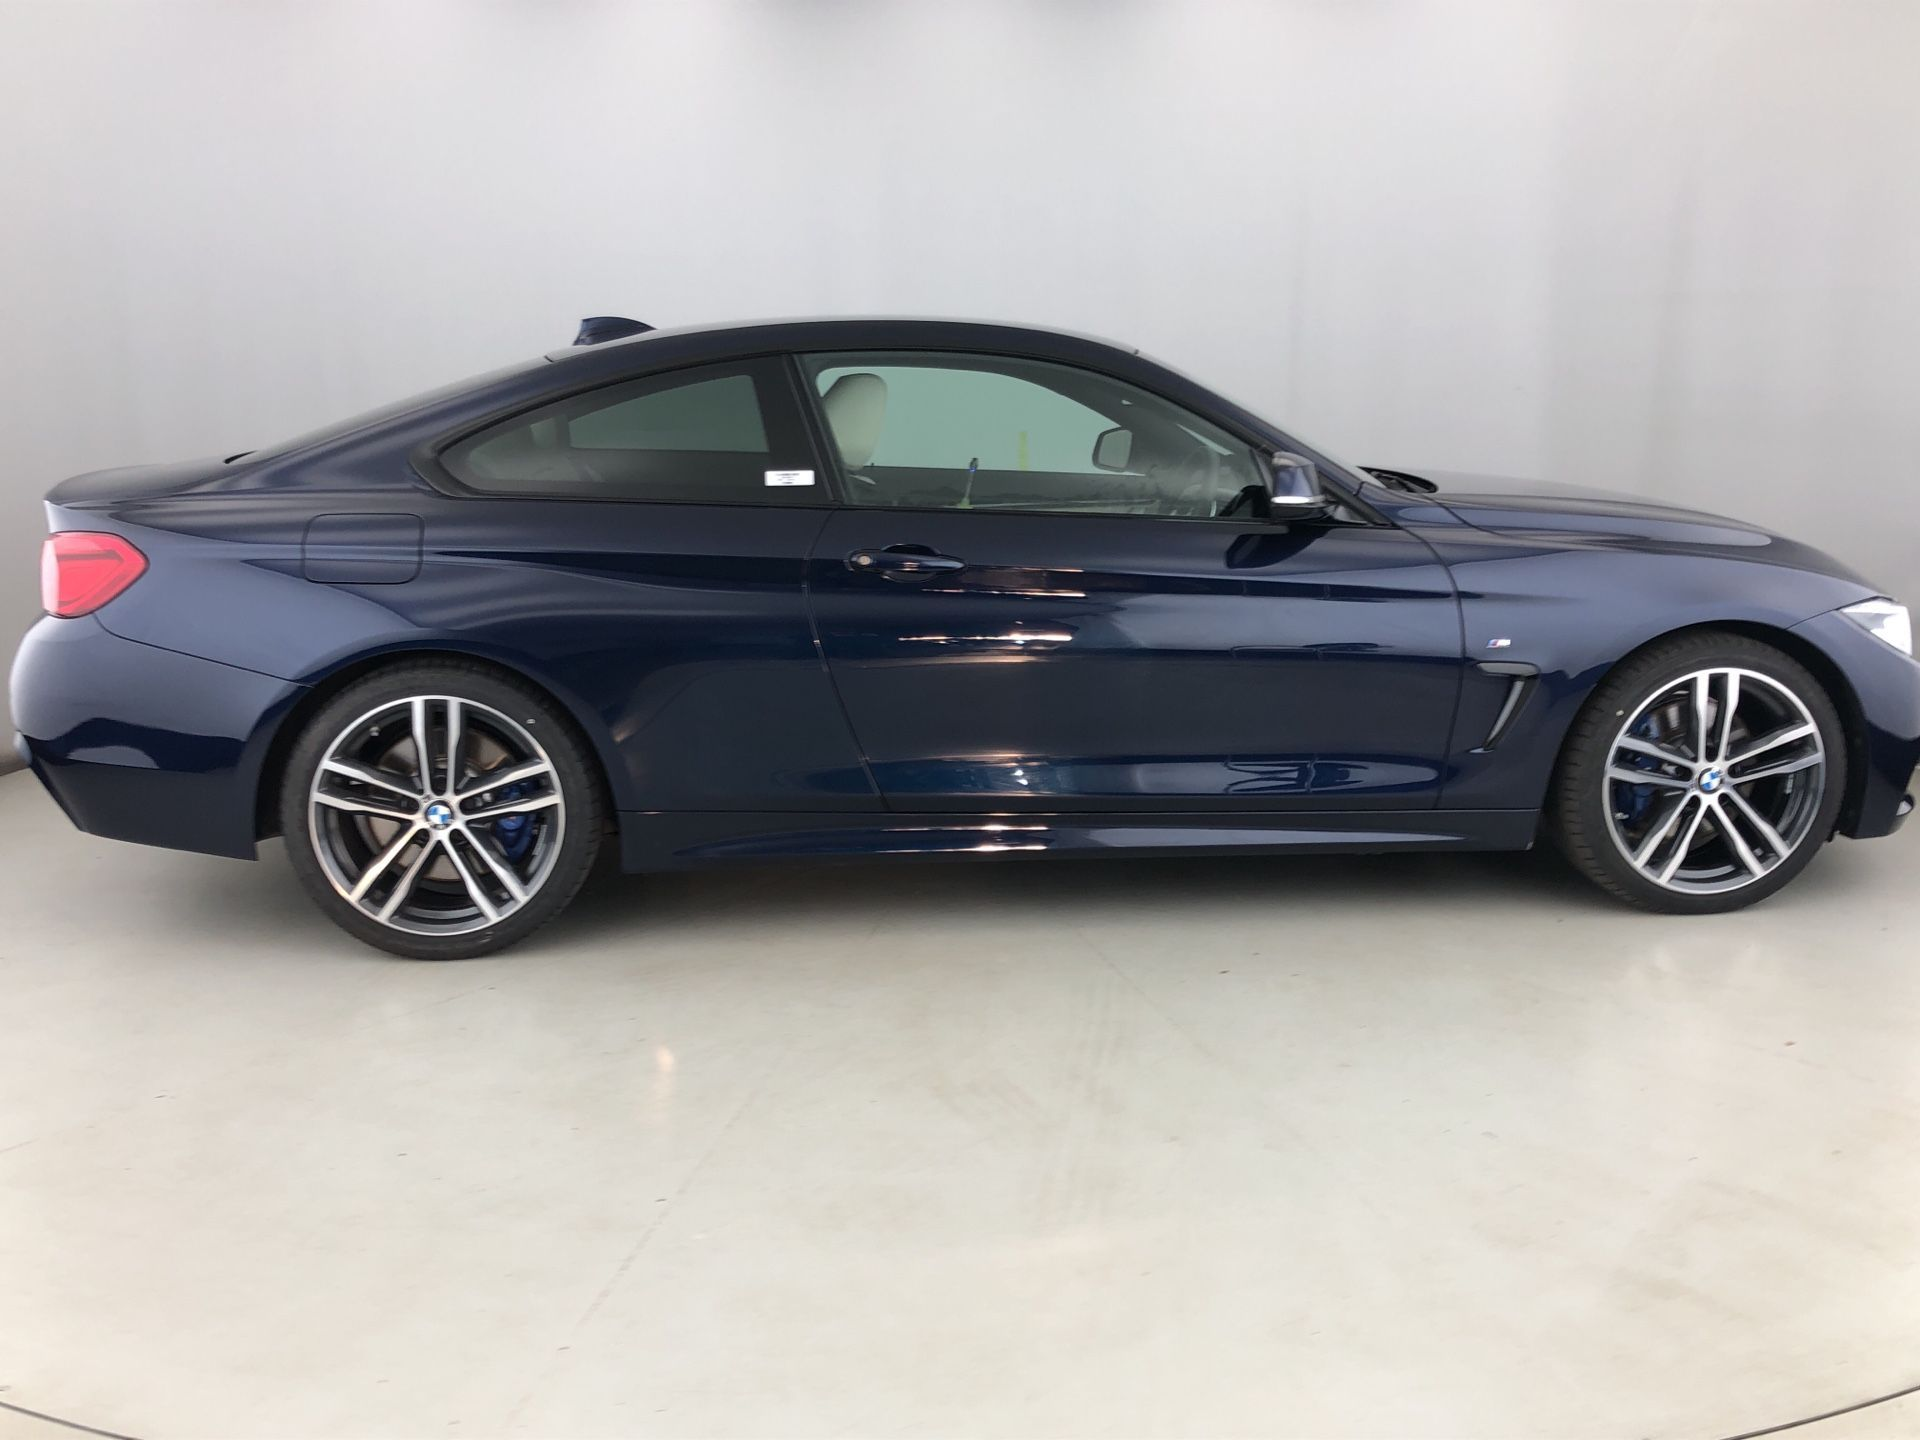 Image 3 - BMW 420d M Sport Coupe (YJ68YWP)